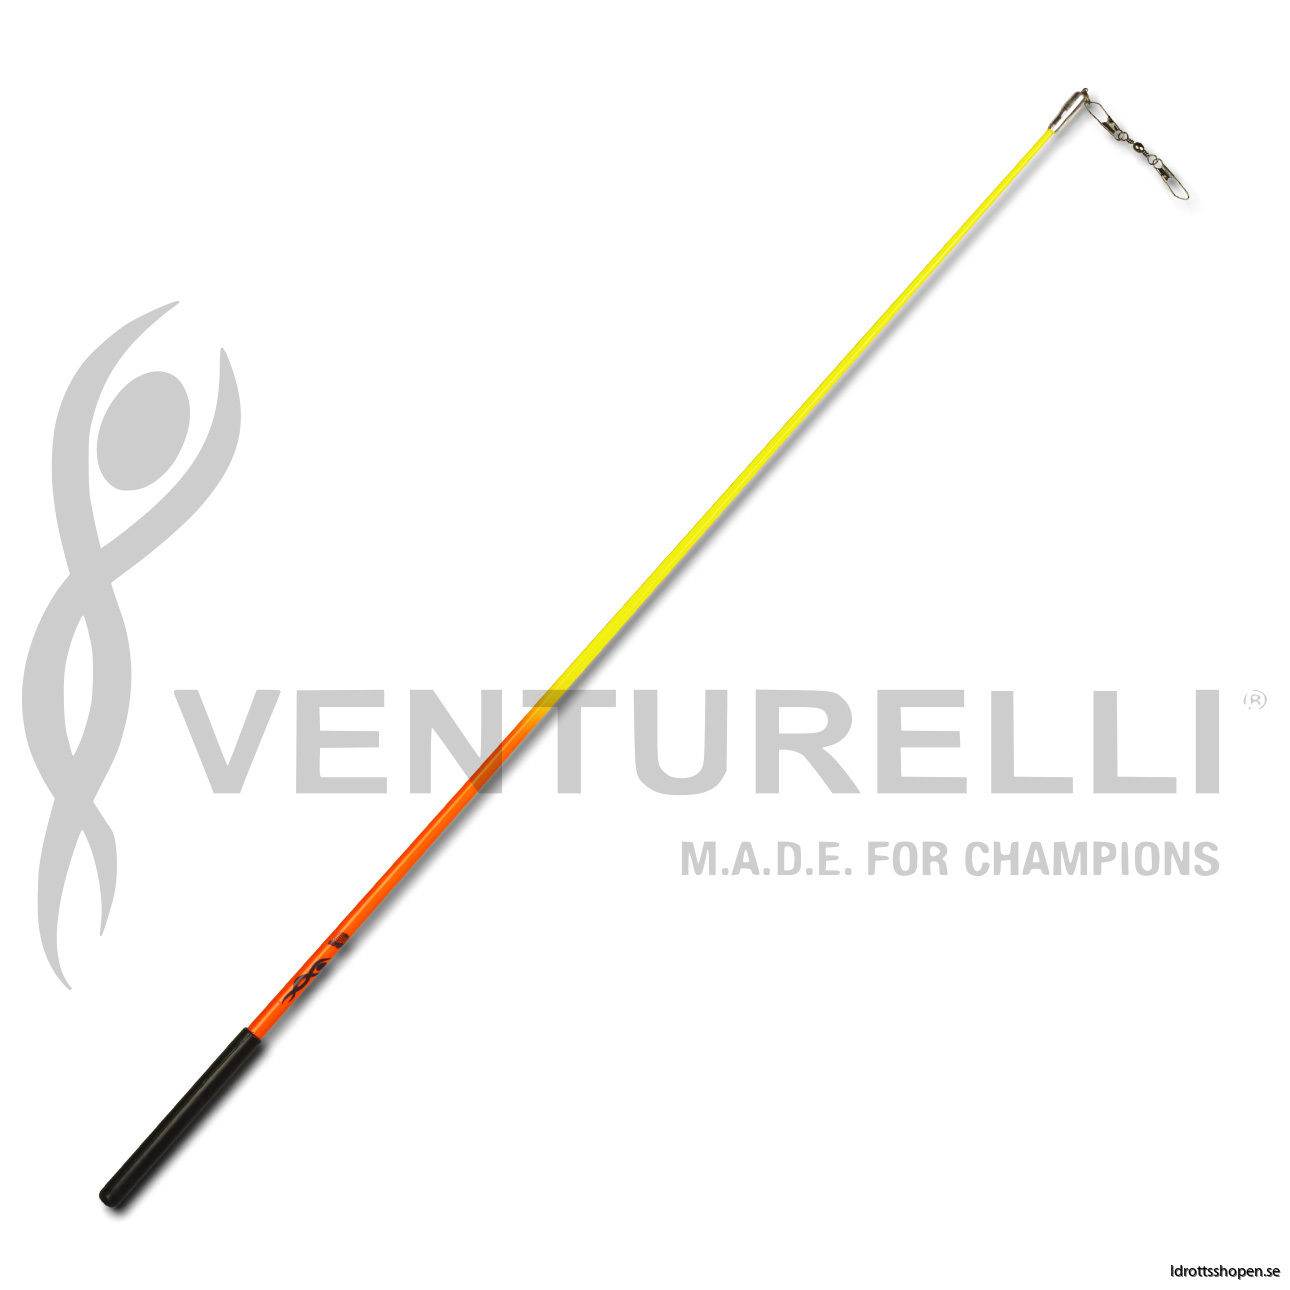 Venturelli pinne ST5916 neon orange gul